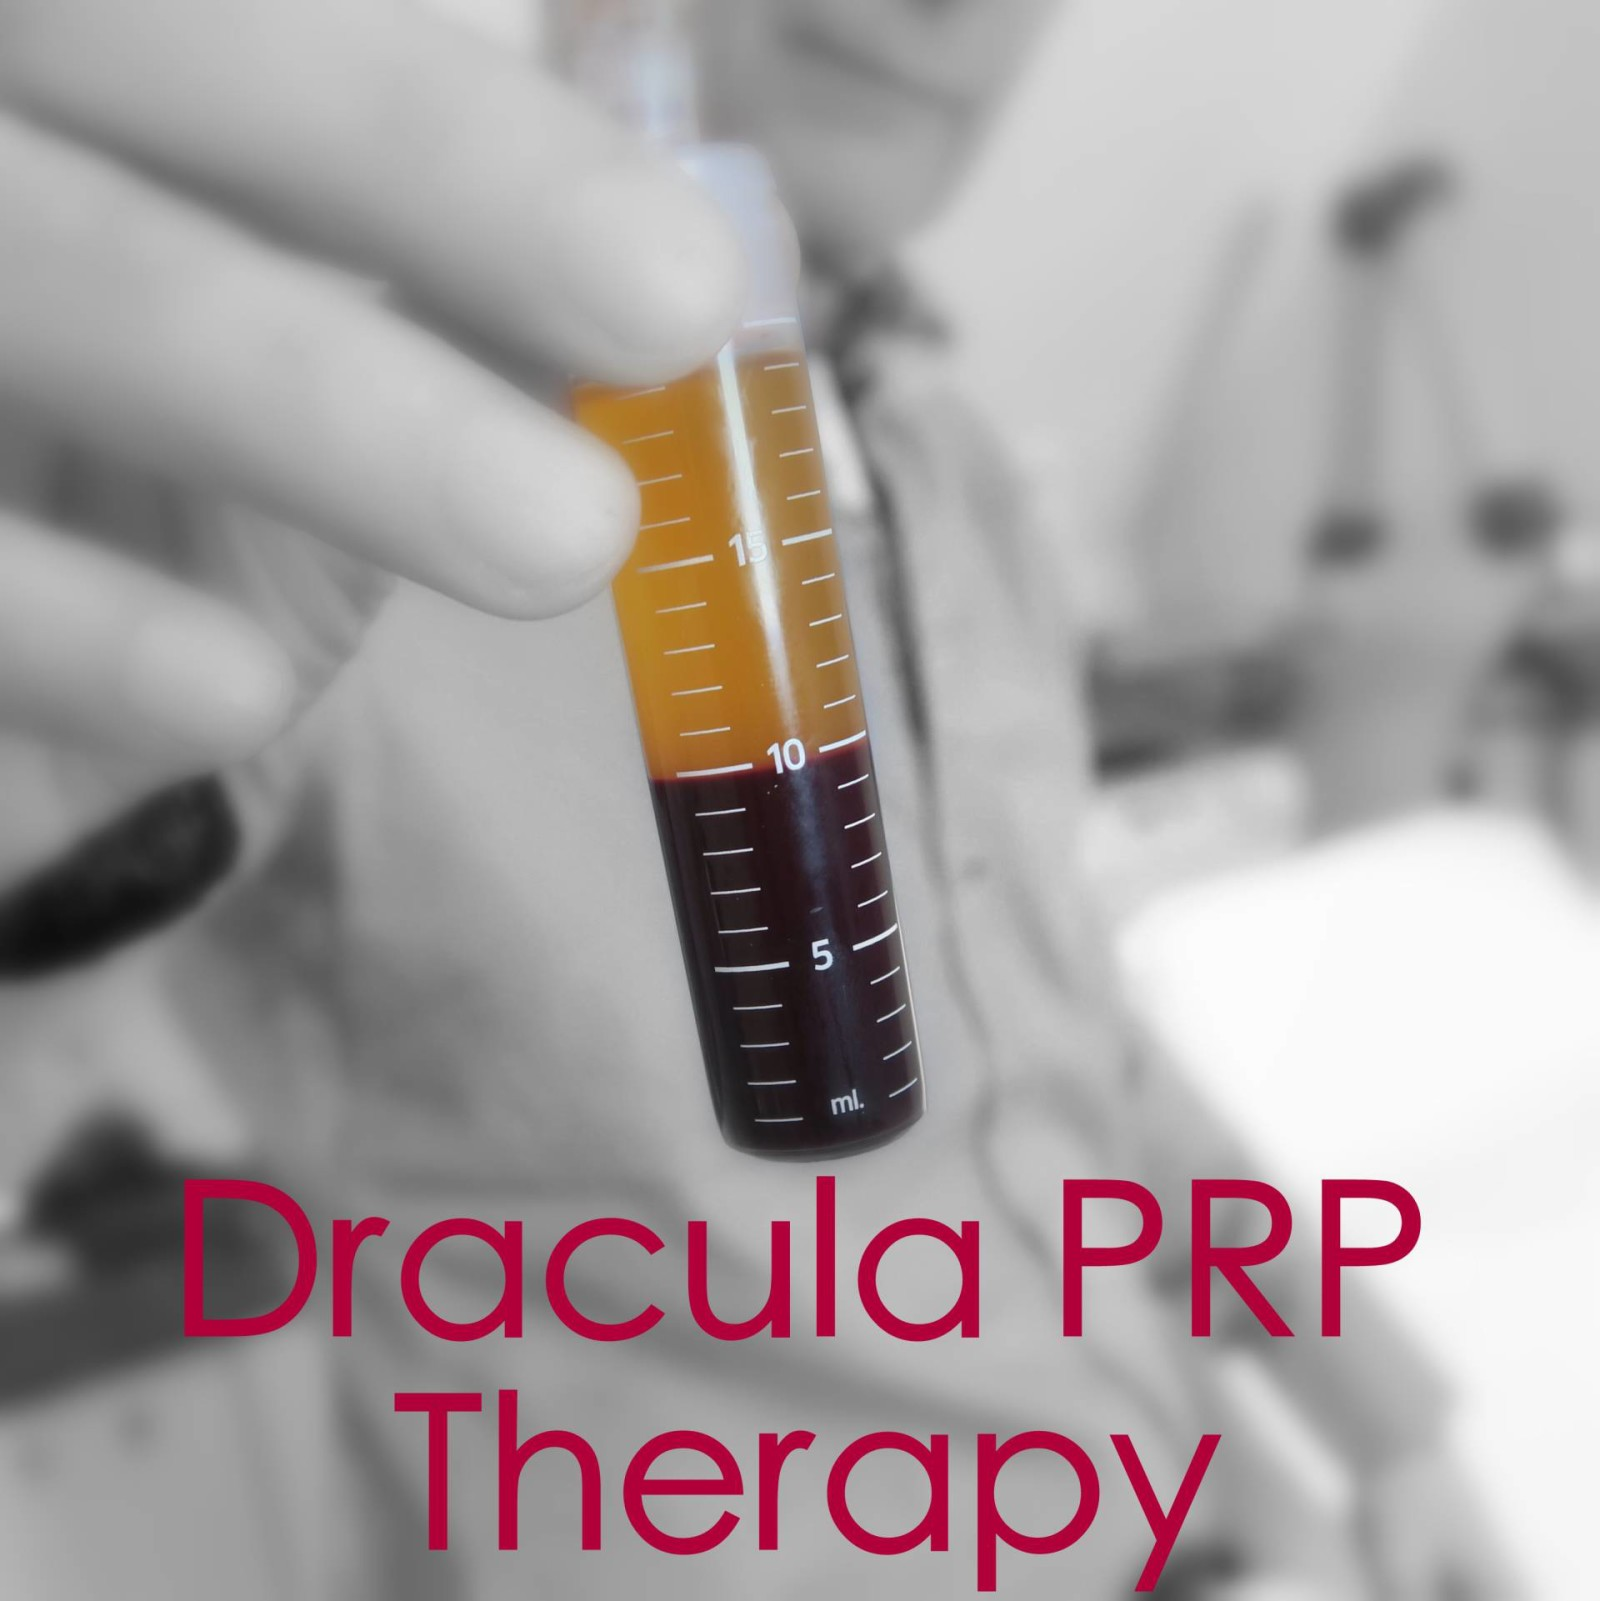 Dracula PRP Therapy